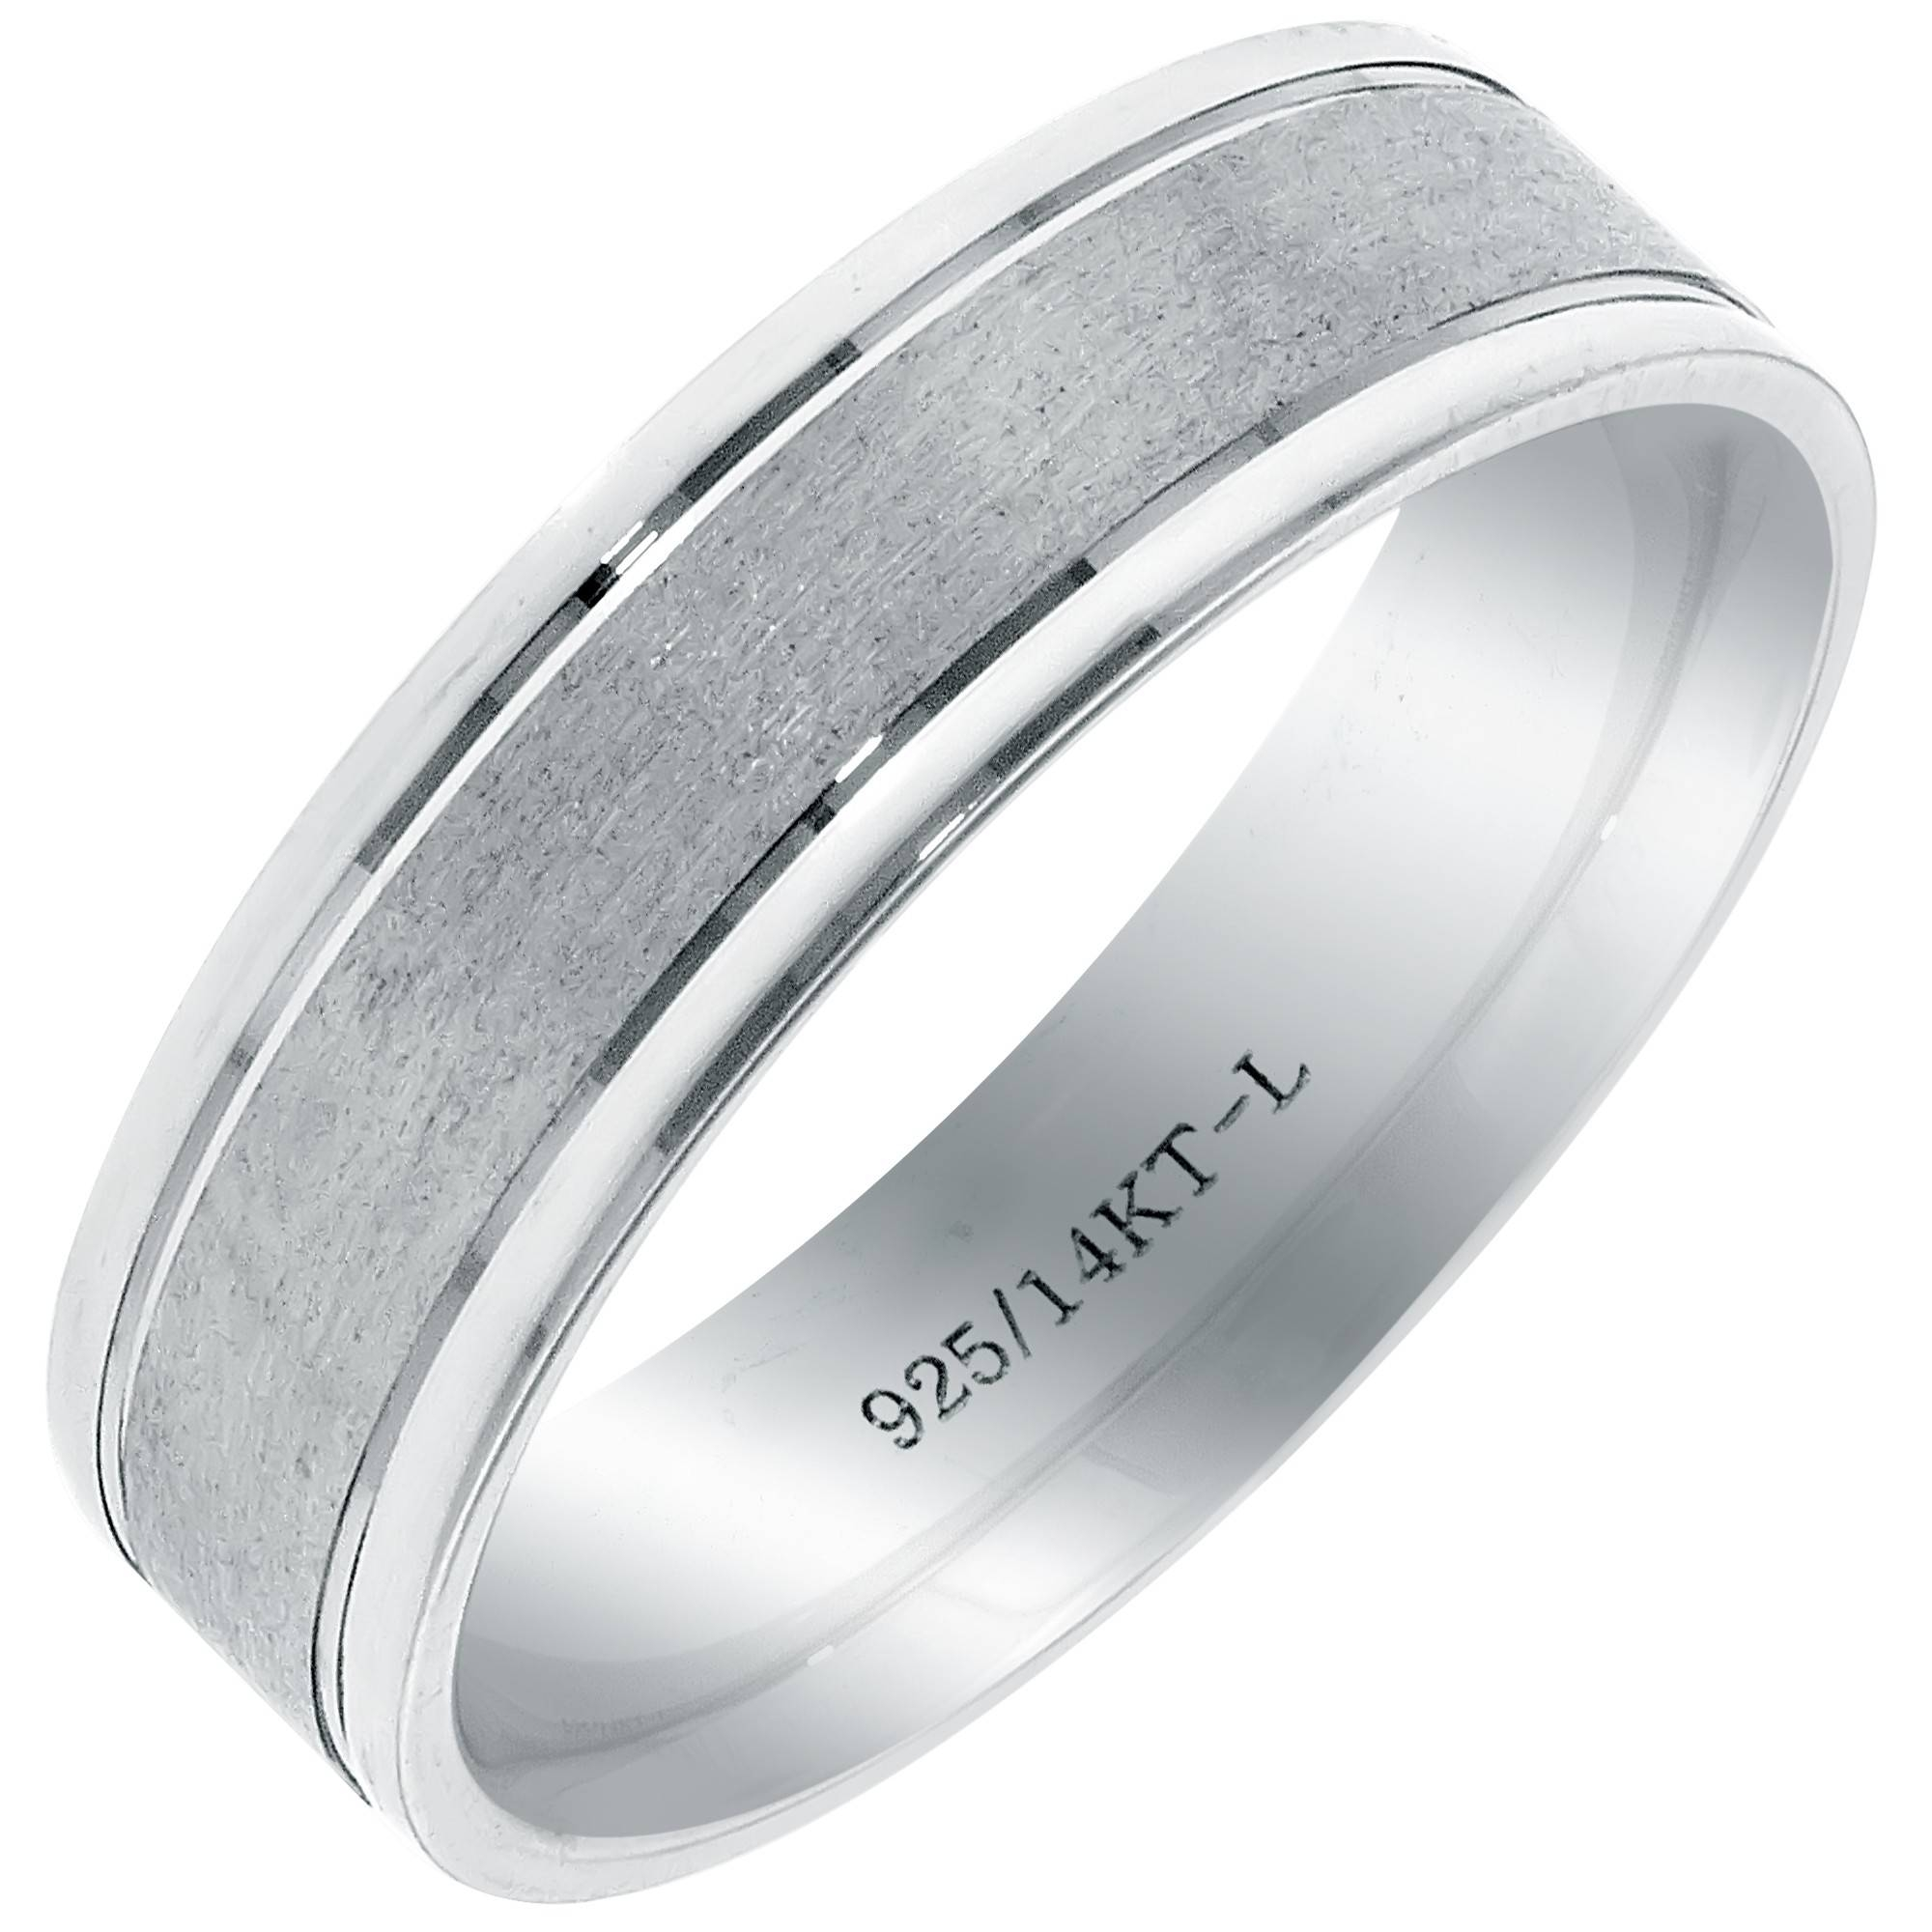 Bond2 Mens Wedding Band In 14Kt White Gold And Sterling Silver (6Mm) Intended For Silver And Gold Mens Wedding Bands (View 4 of 15)